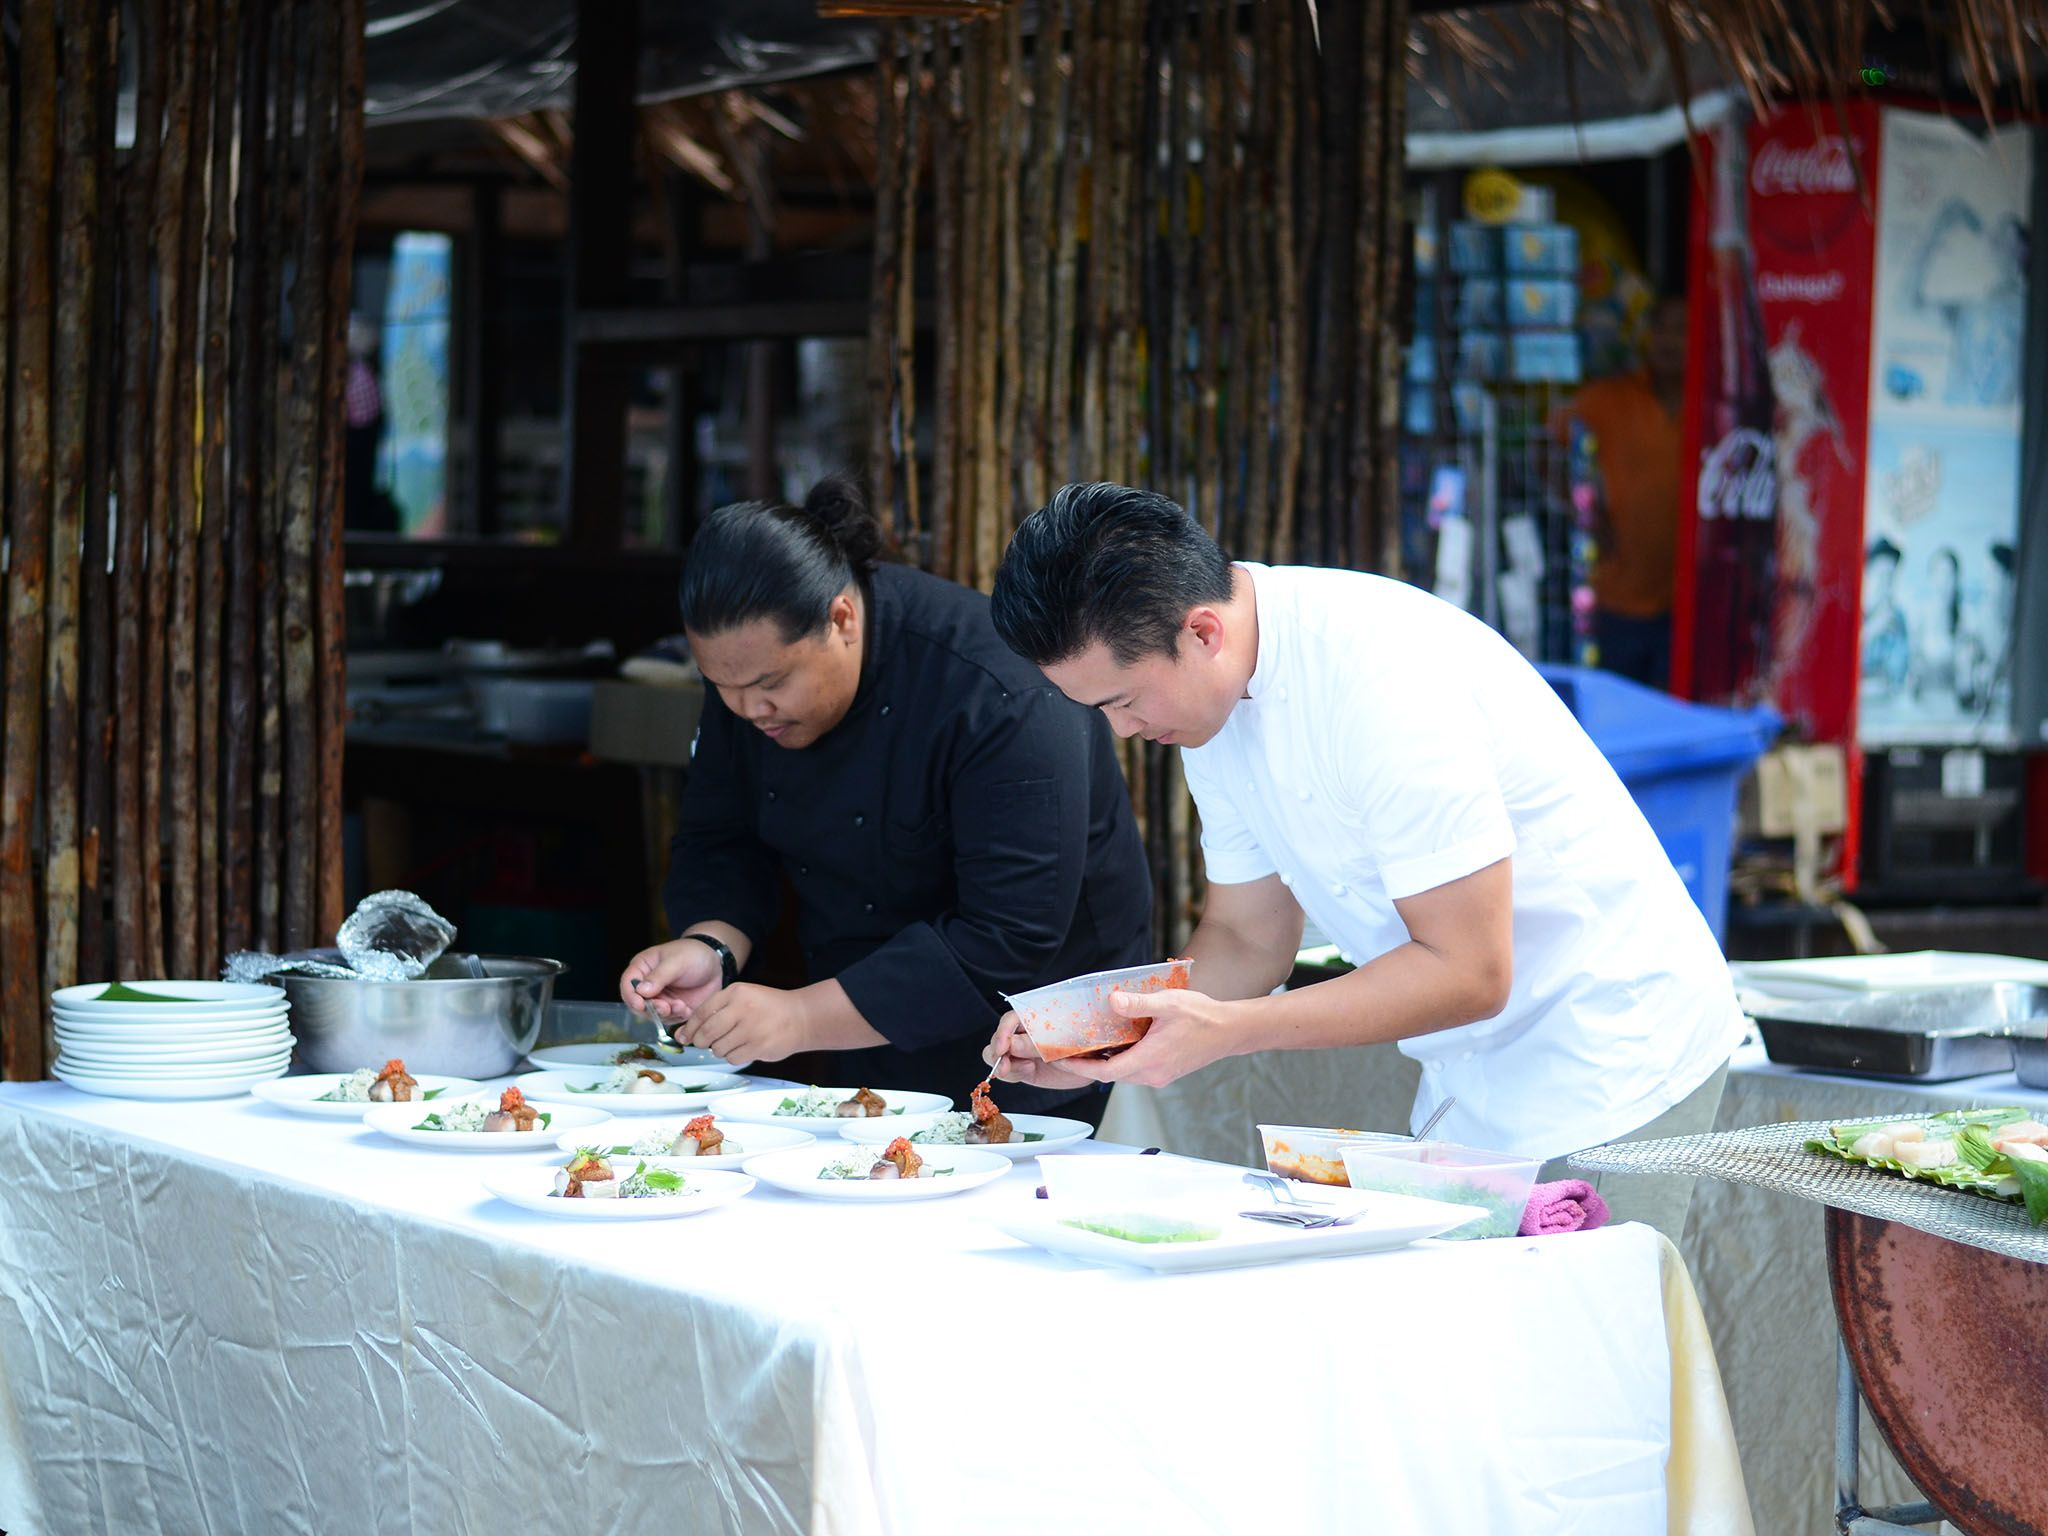 Terengganu, Malaysia: It's time to plate. Viet and Taufiq plates the dish uniformly yet... [Photo of the day - نوامبر 2016]